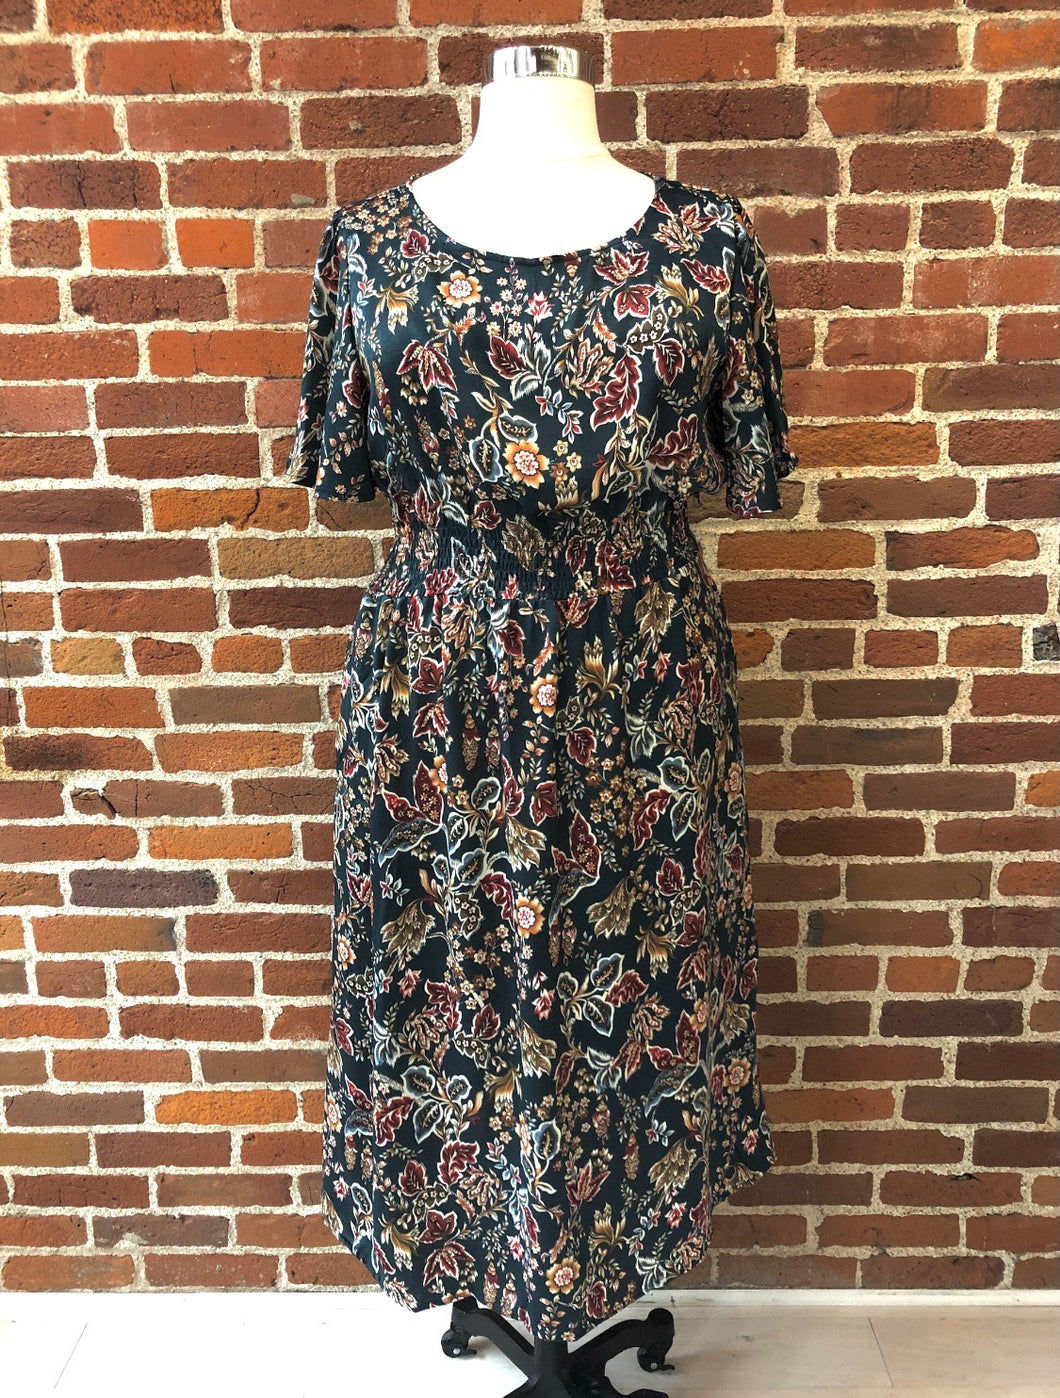 Britt Teal Floral Dress - FINAL SALE